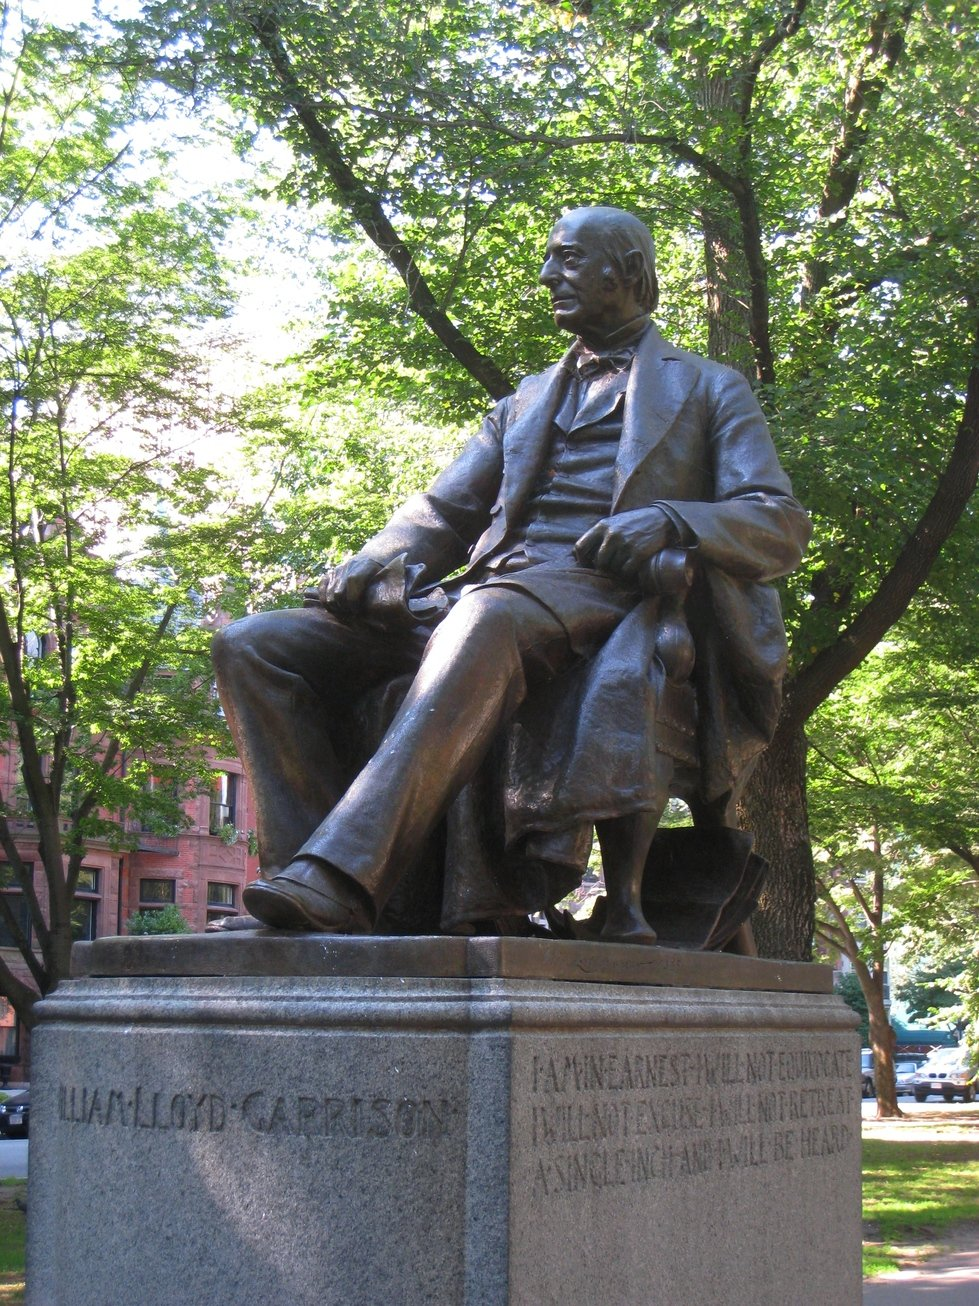 William Lloyd Garrison Statue (image from Wikimedia)